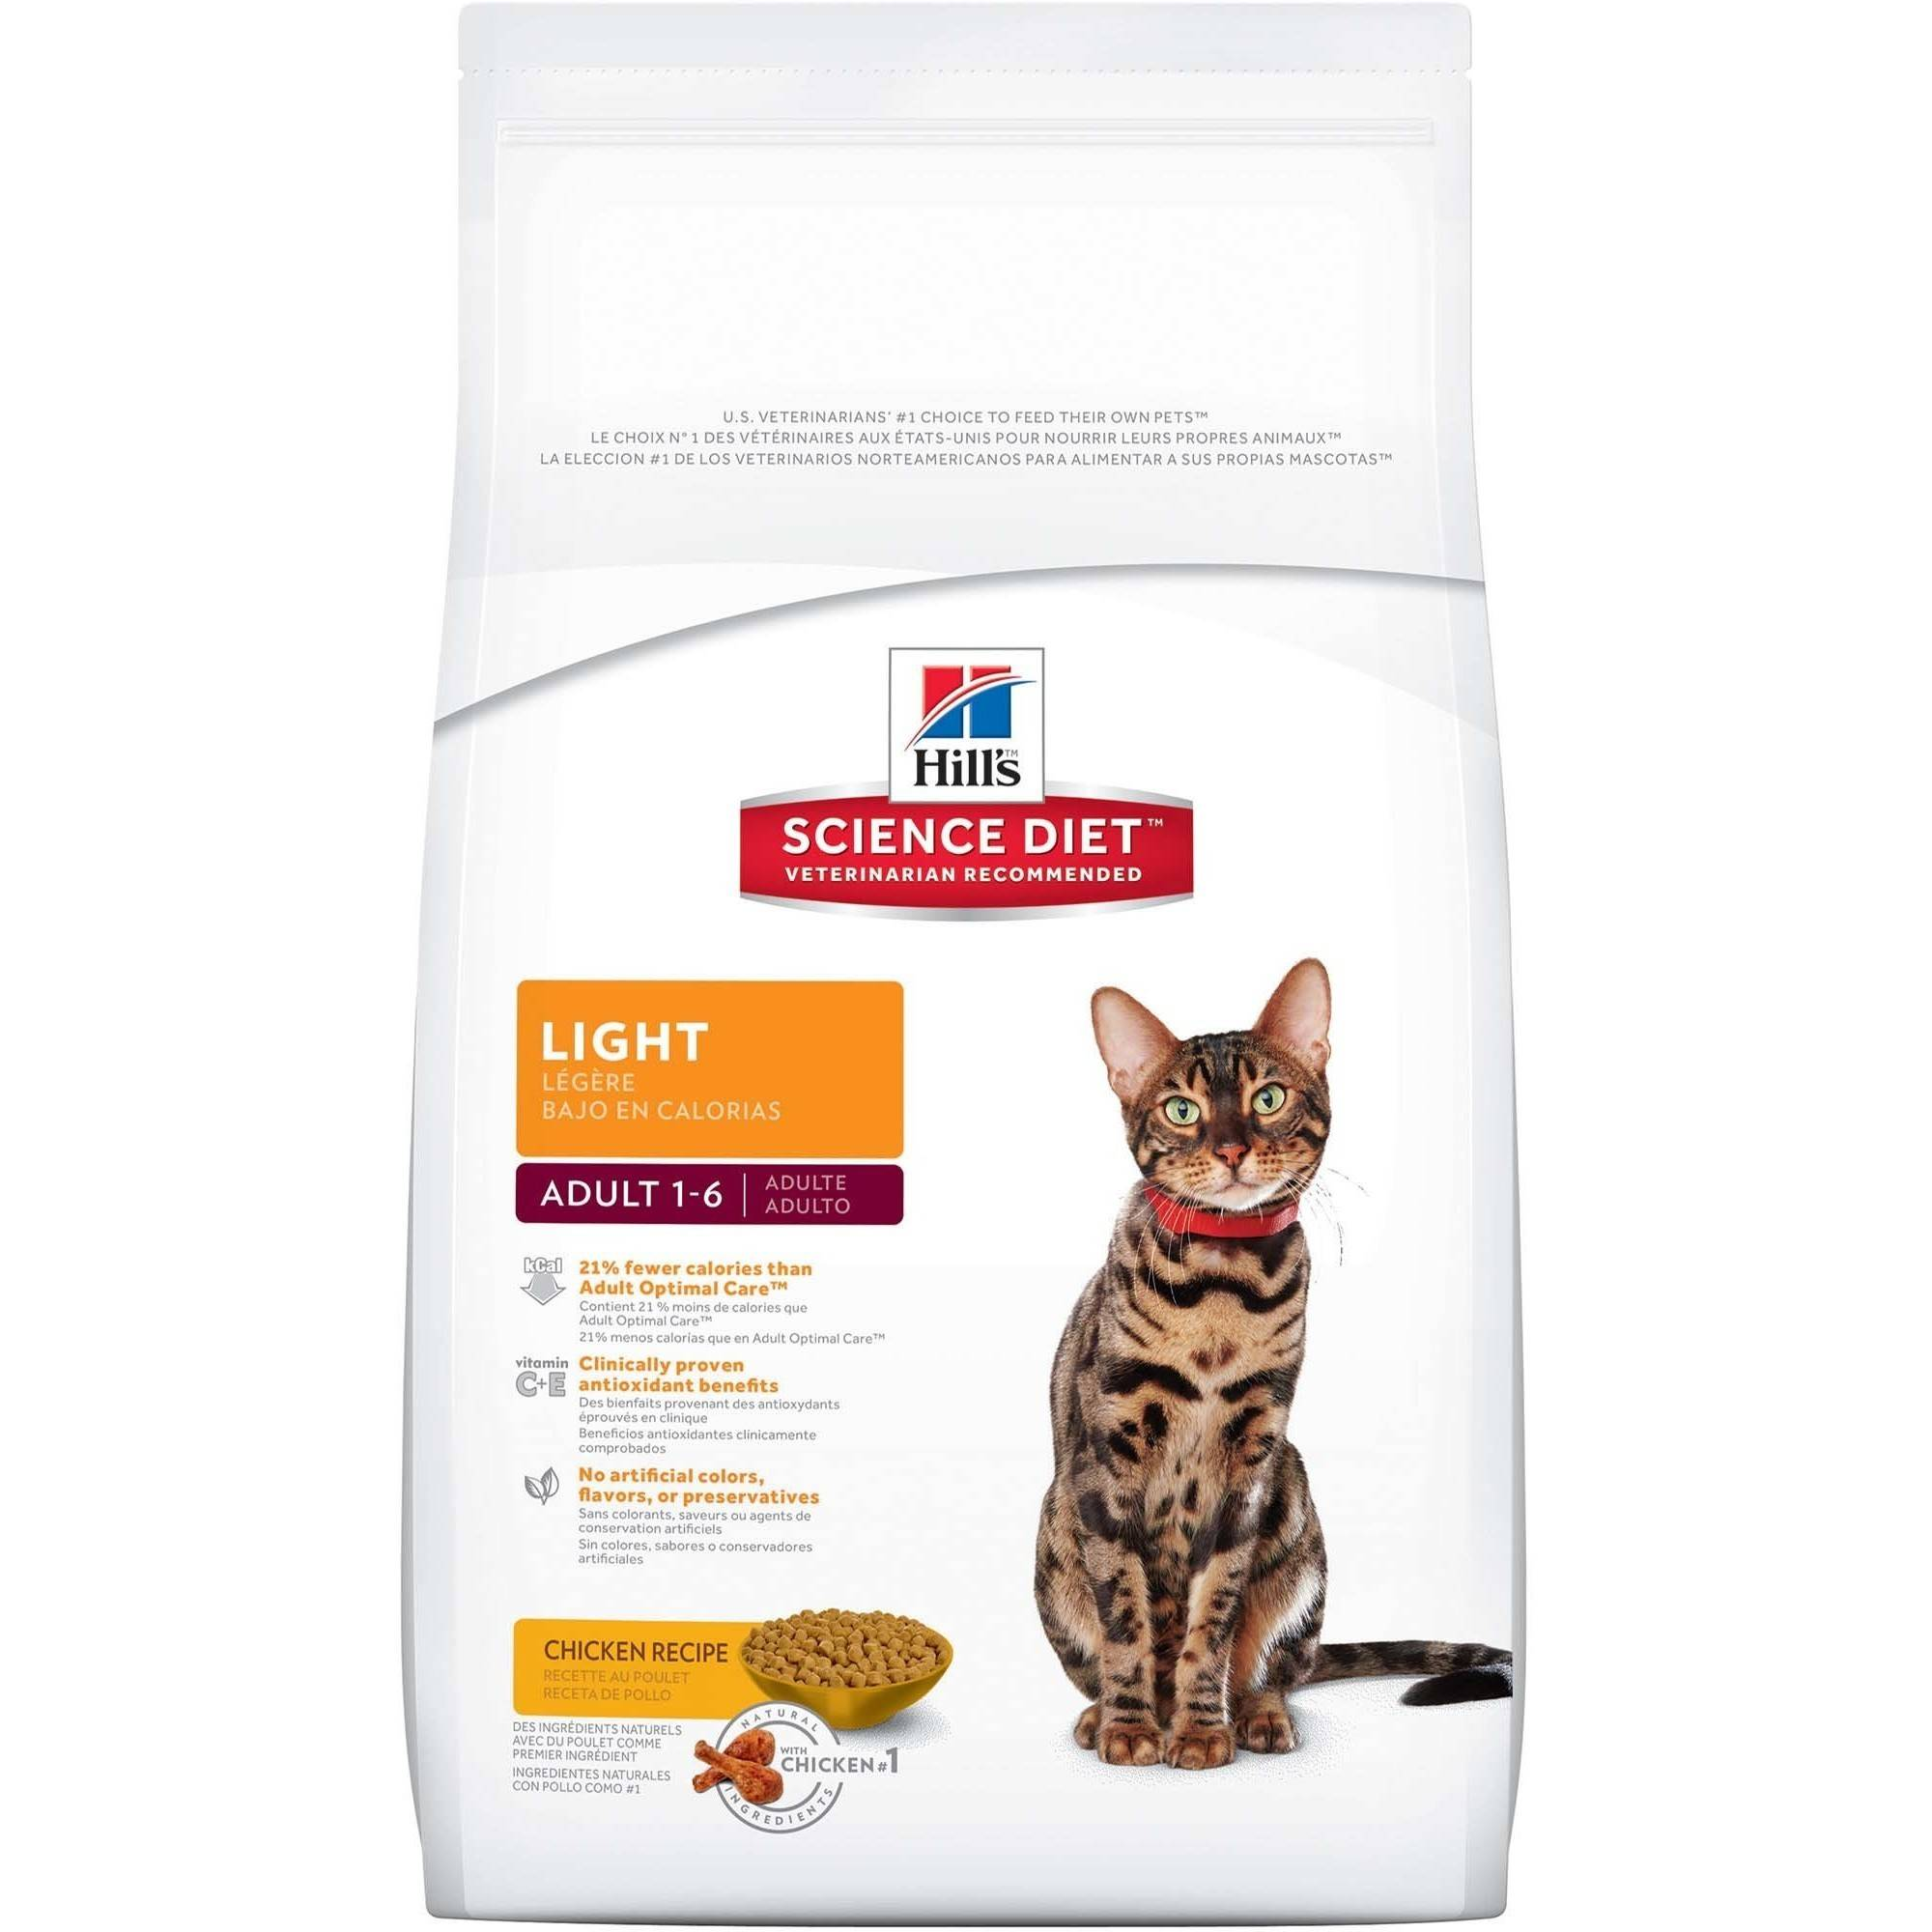 Hill's Science Diet Adult Light Chicken Recipe Dry Cat Food, 4 lb bag by Hills Pet Nutrition